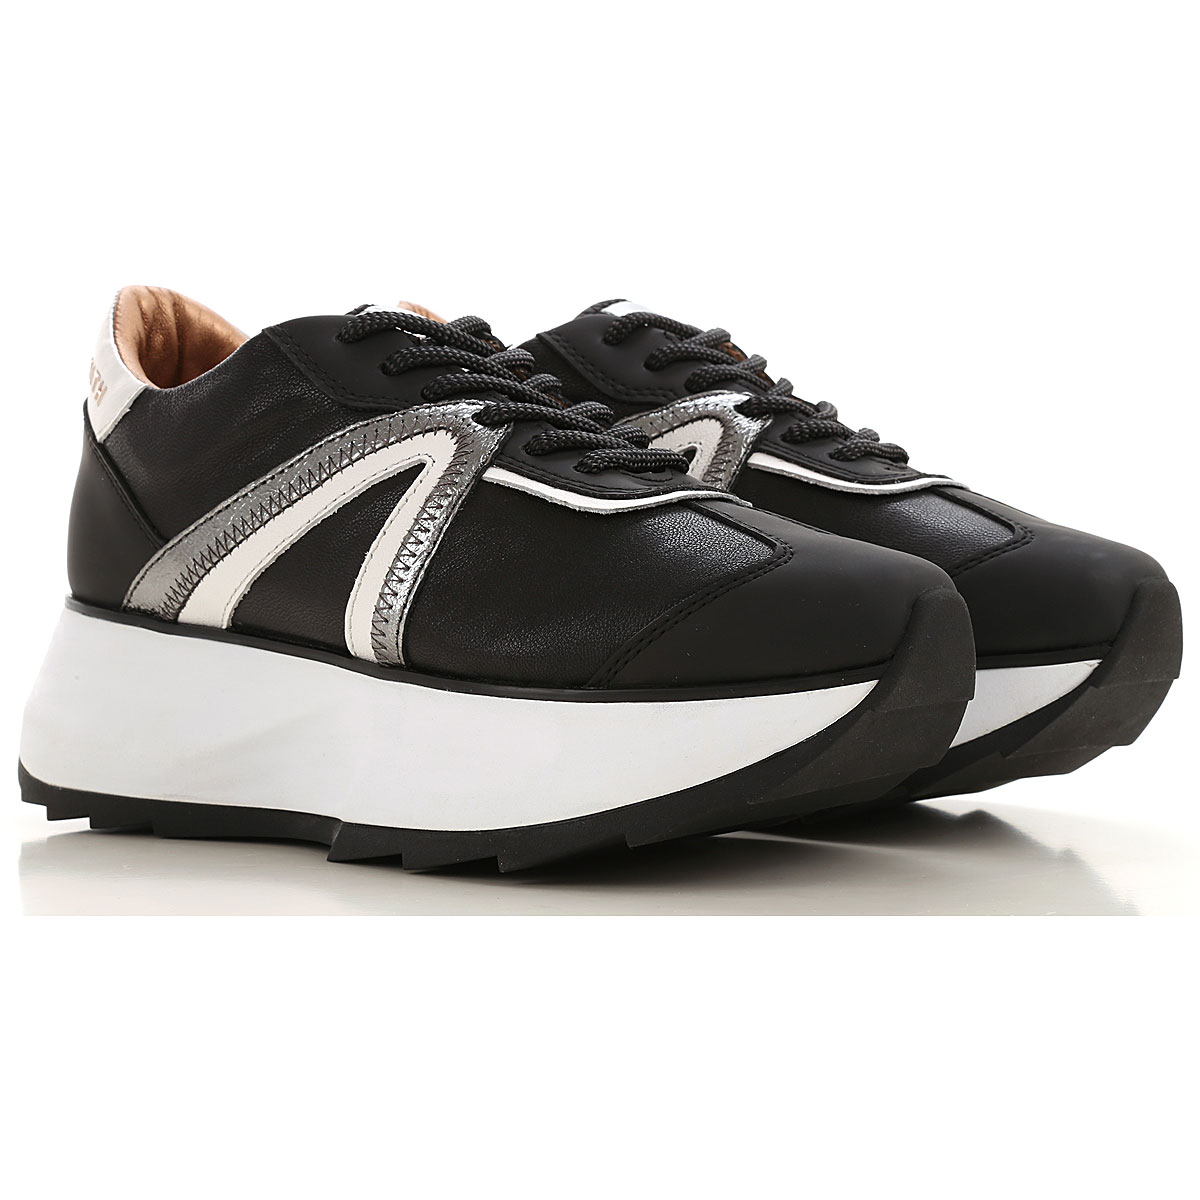 Alexander Smith Sneakers for Women On Sale, Black, Leather, 2019, 10 5 6 7 9